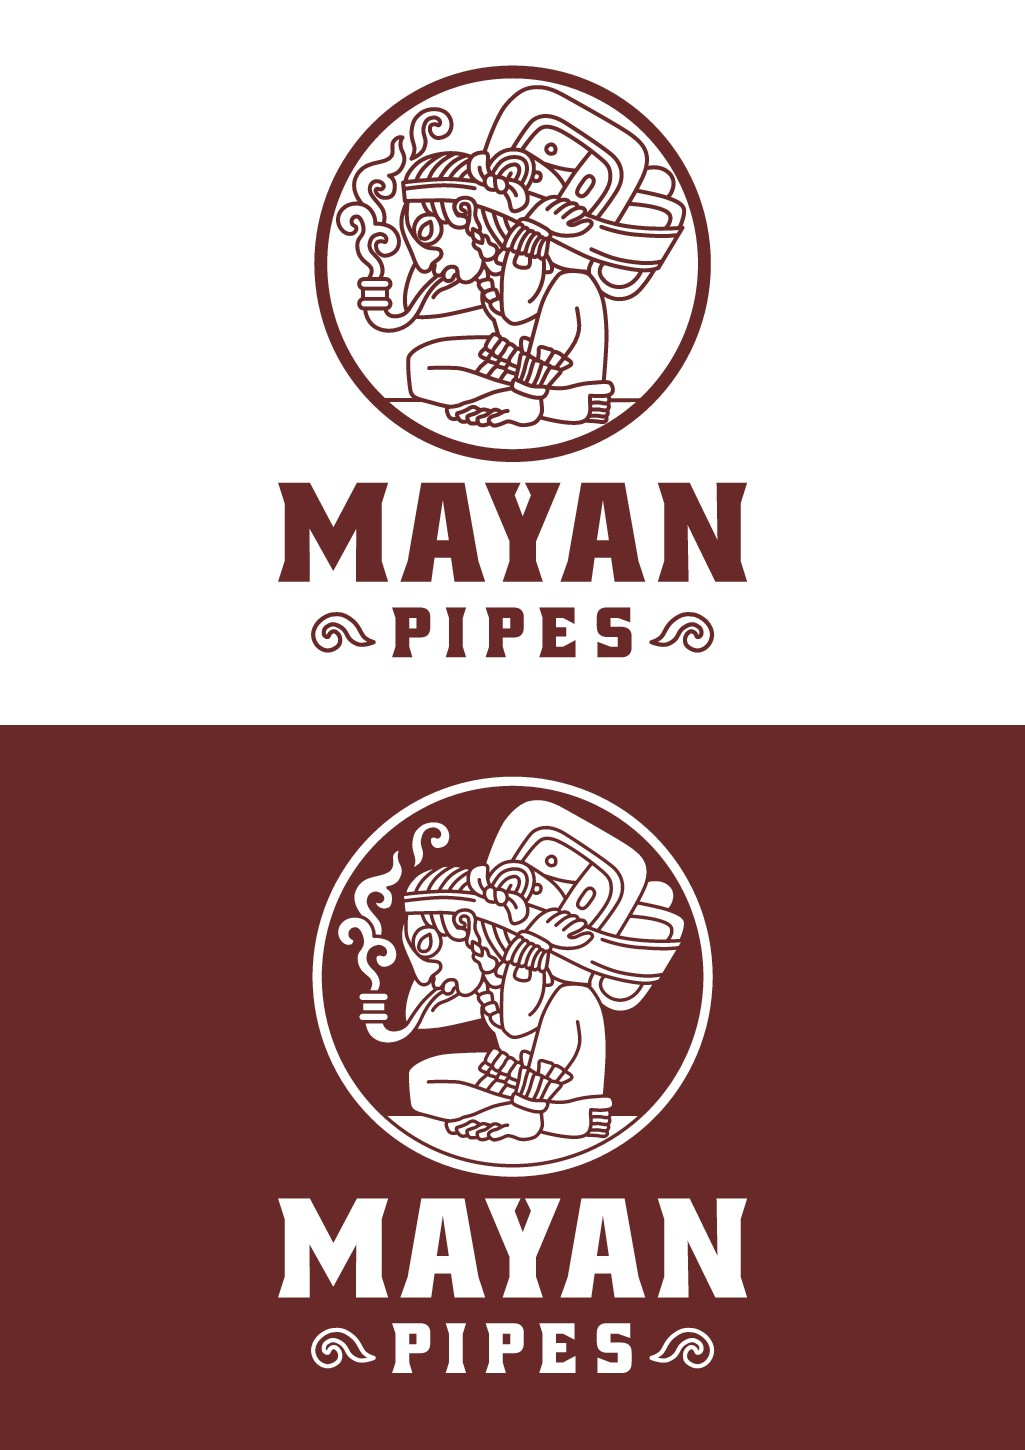 Logo for hand-made Mayan pipes (low key weed pipes)